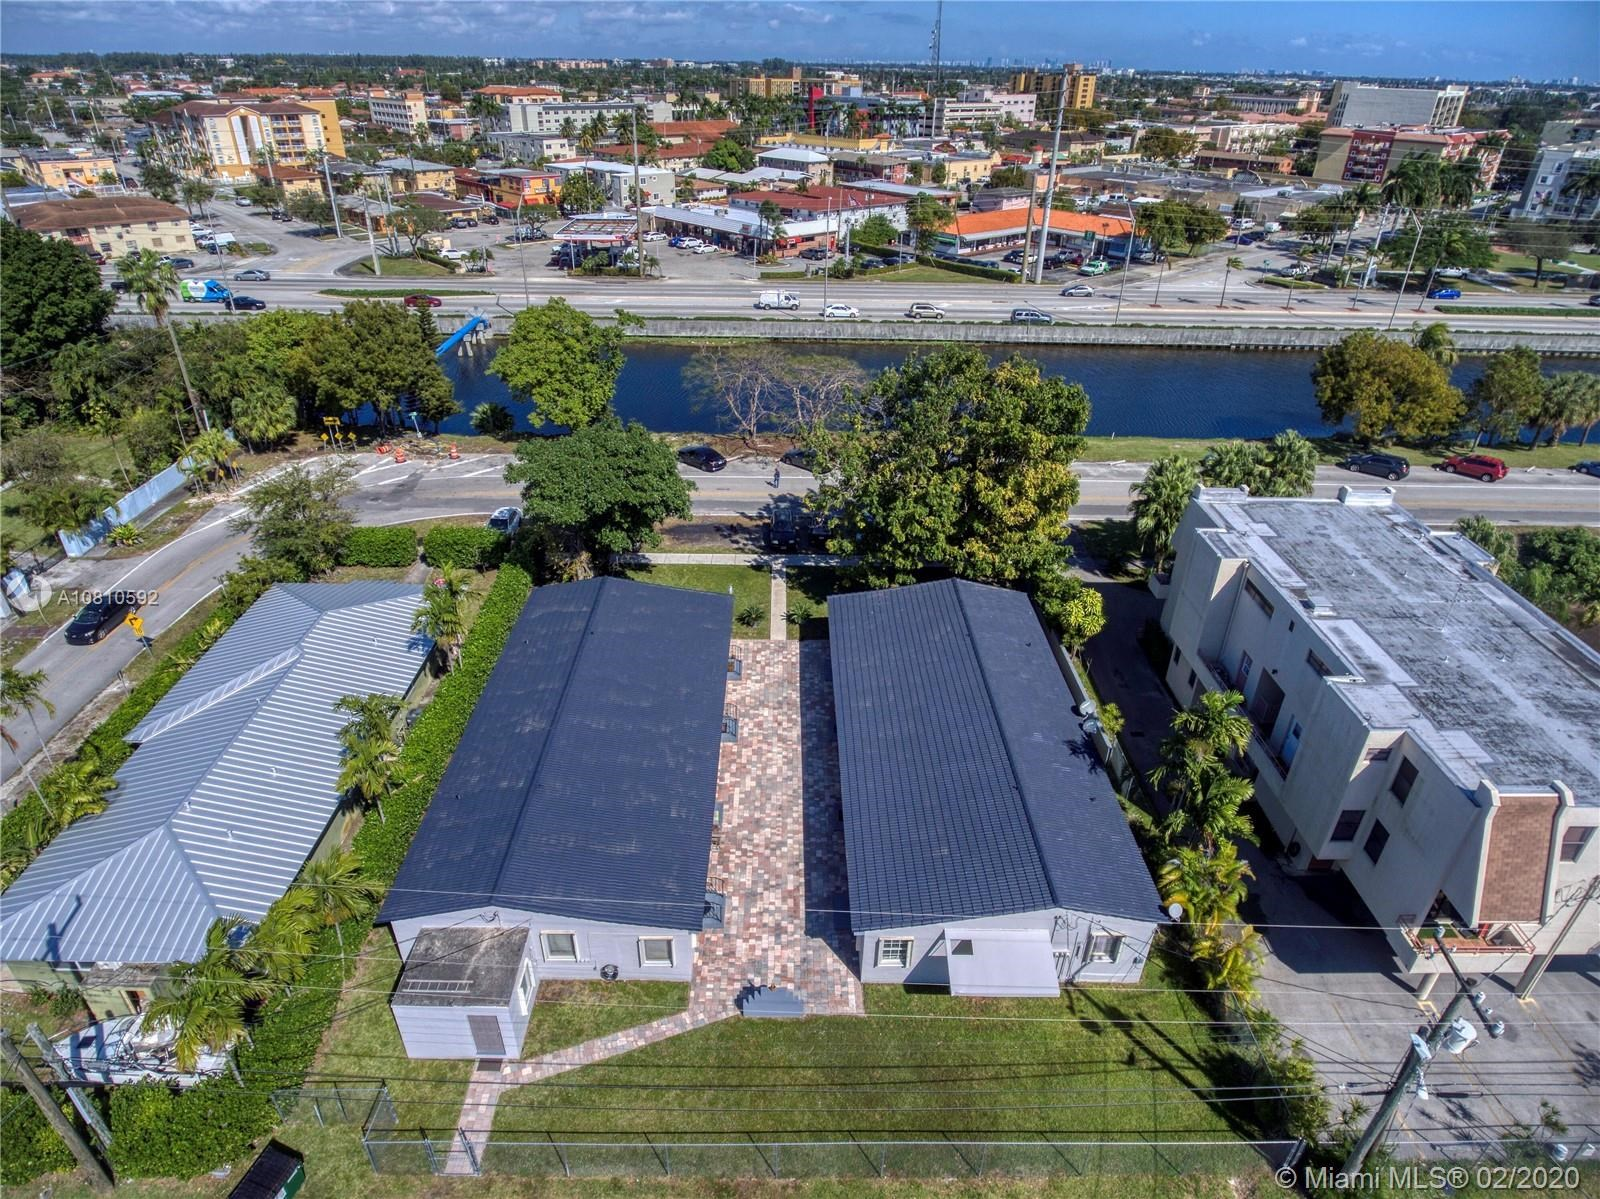 266  Canal St, Miami Springs, FL 33166